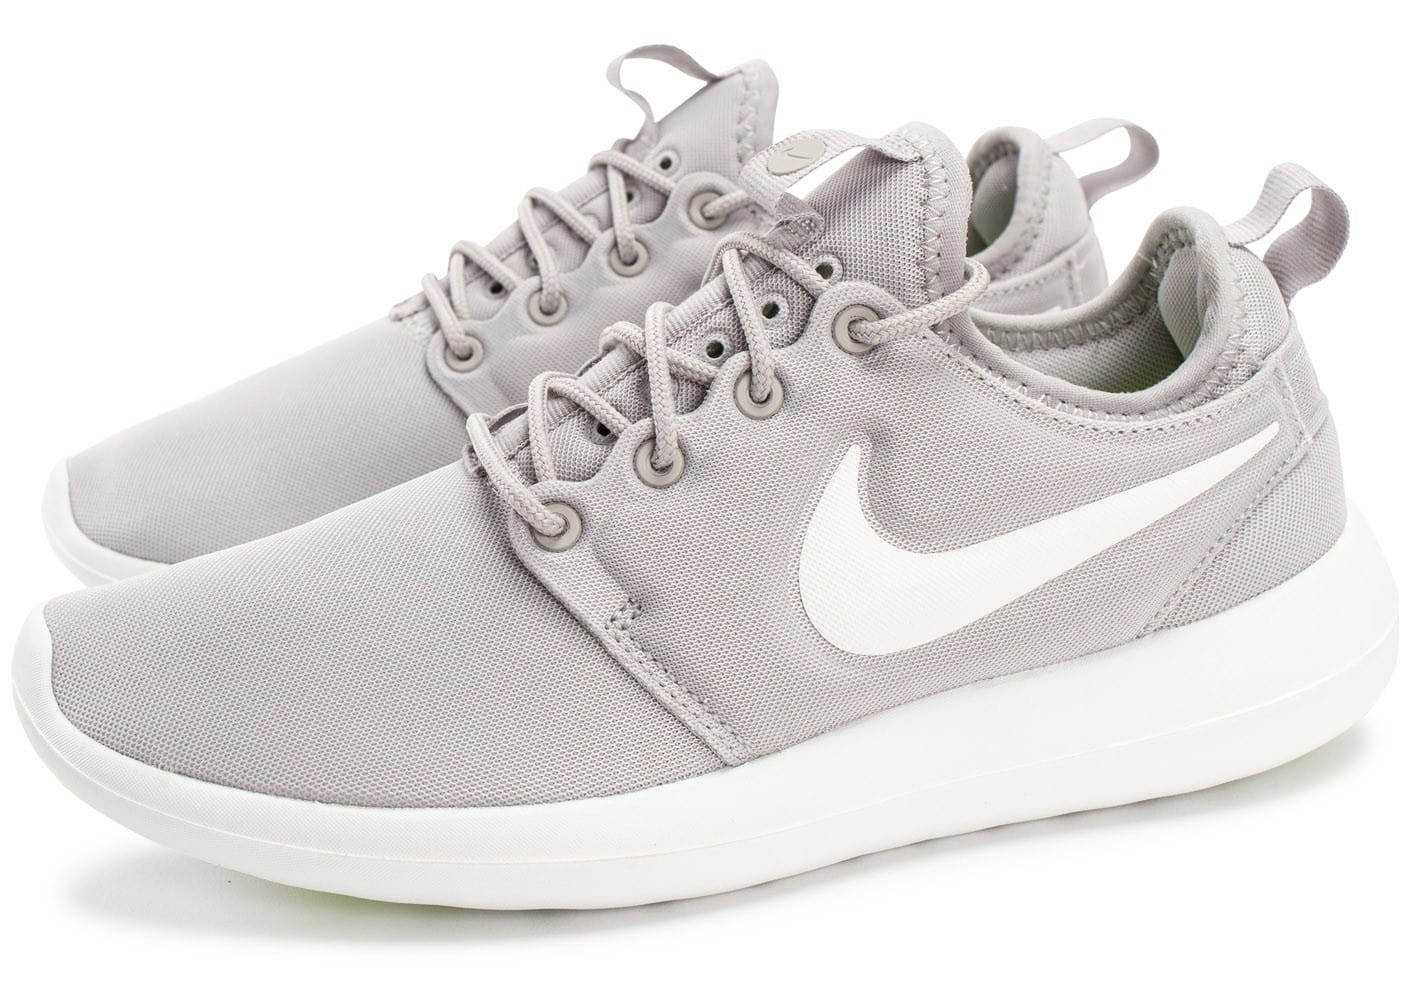 Nike Roshe Two Grey | Gris | Chaussures grises, Chaussure